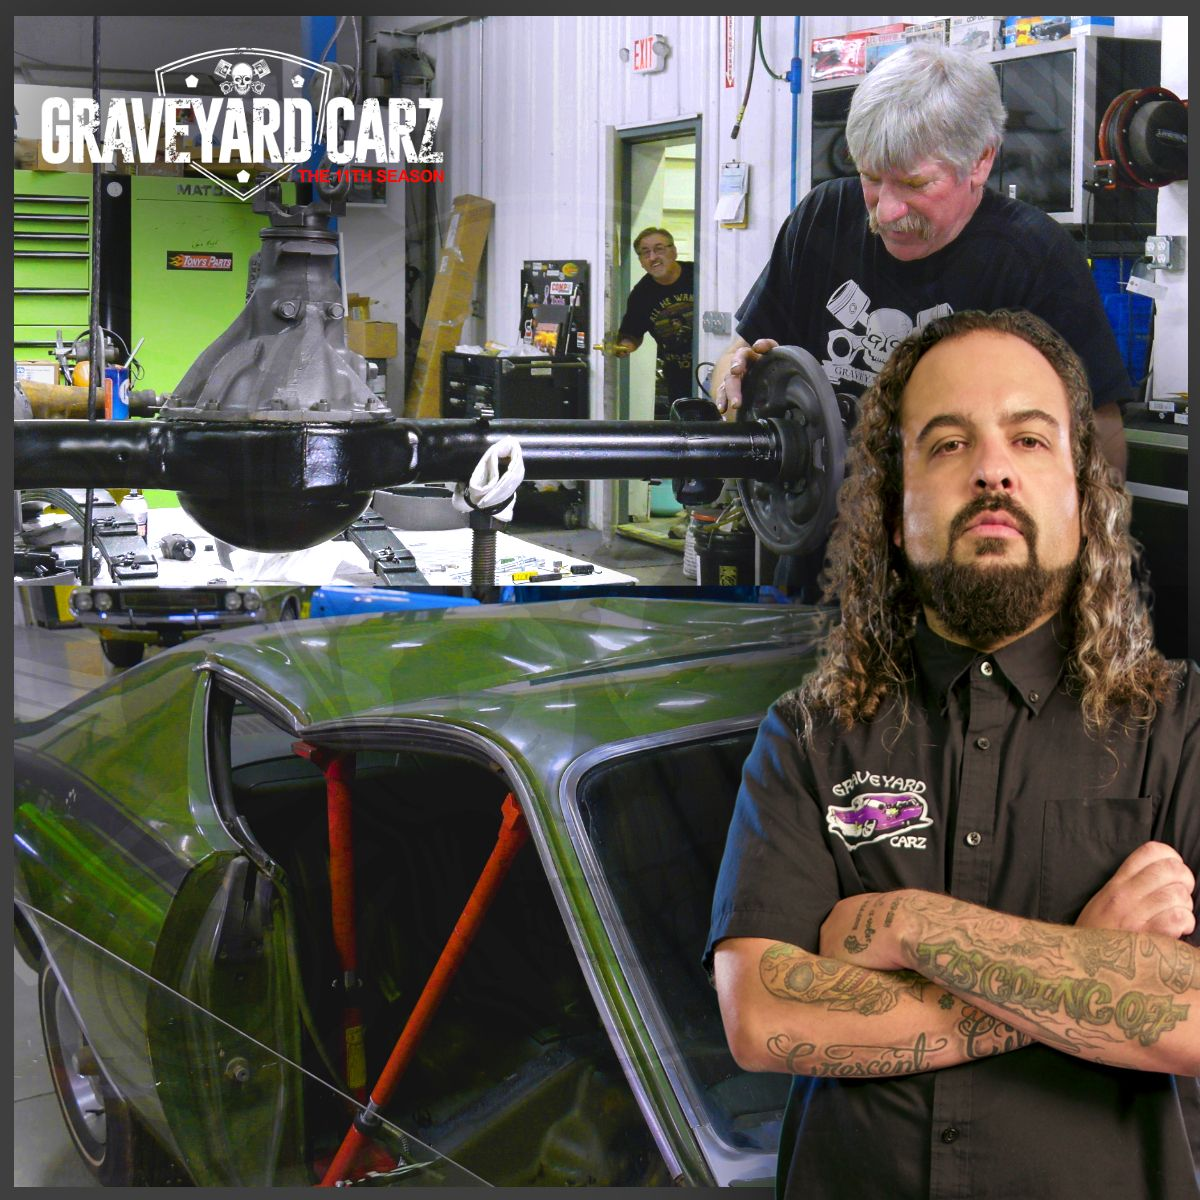 An all-new episode airs tonight on @MotortrendTV! Yesterday was also Will Scott&#39;s birthday! What&#39;s your favorite paint job he&#39;s done? #MotortrendTV #MoparOrNoCar #GYC #Mopar4Life #MoparNation #Motortrend<br>http://pic.twitter.com/KxNs1SKAvV